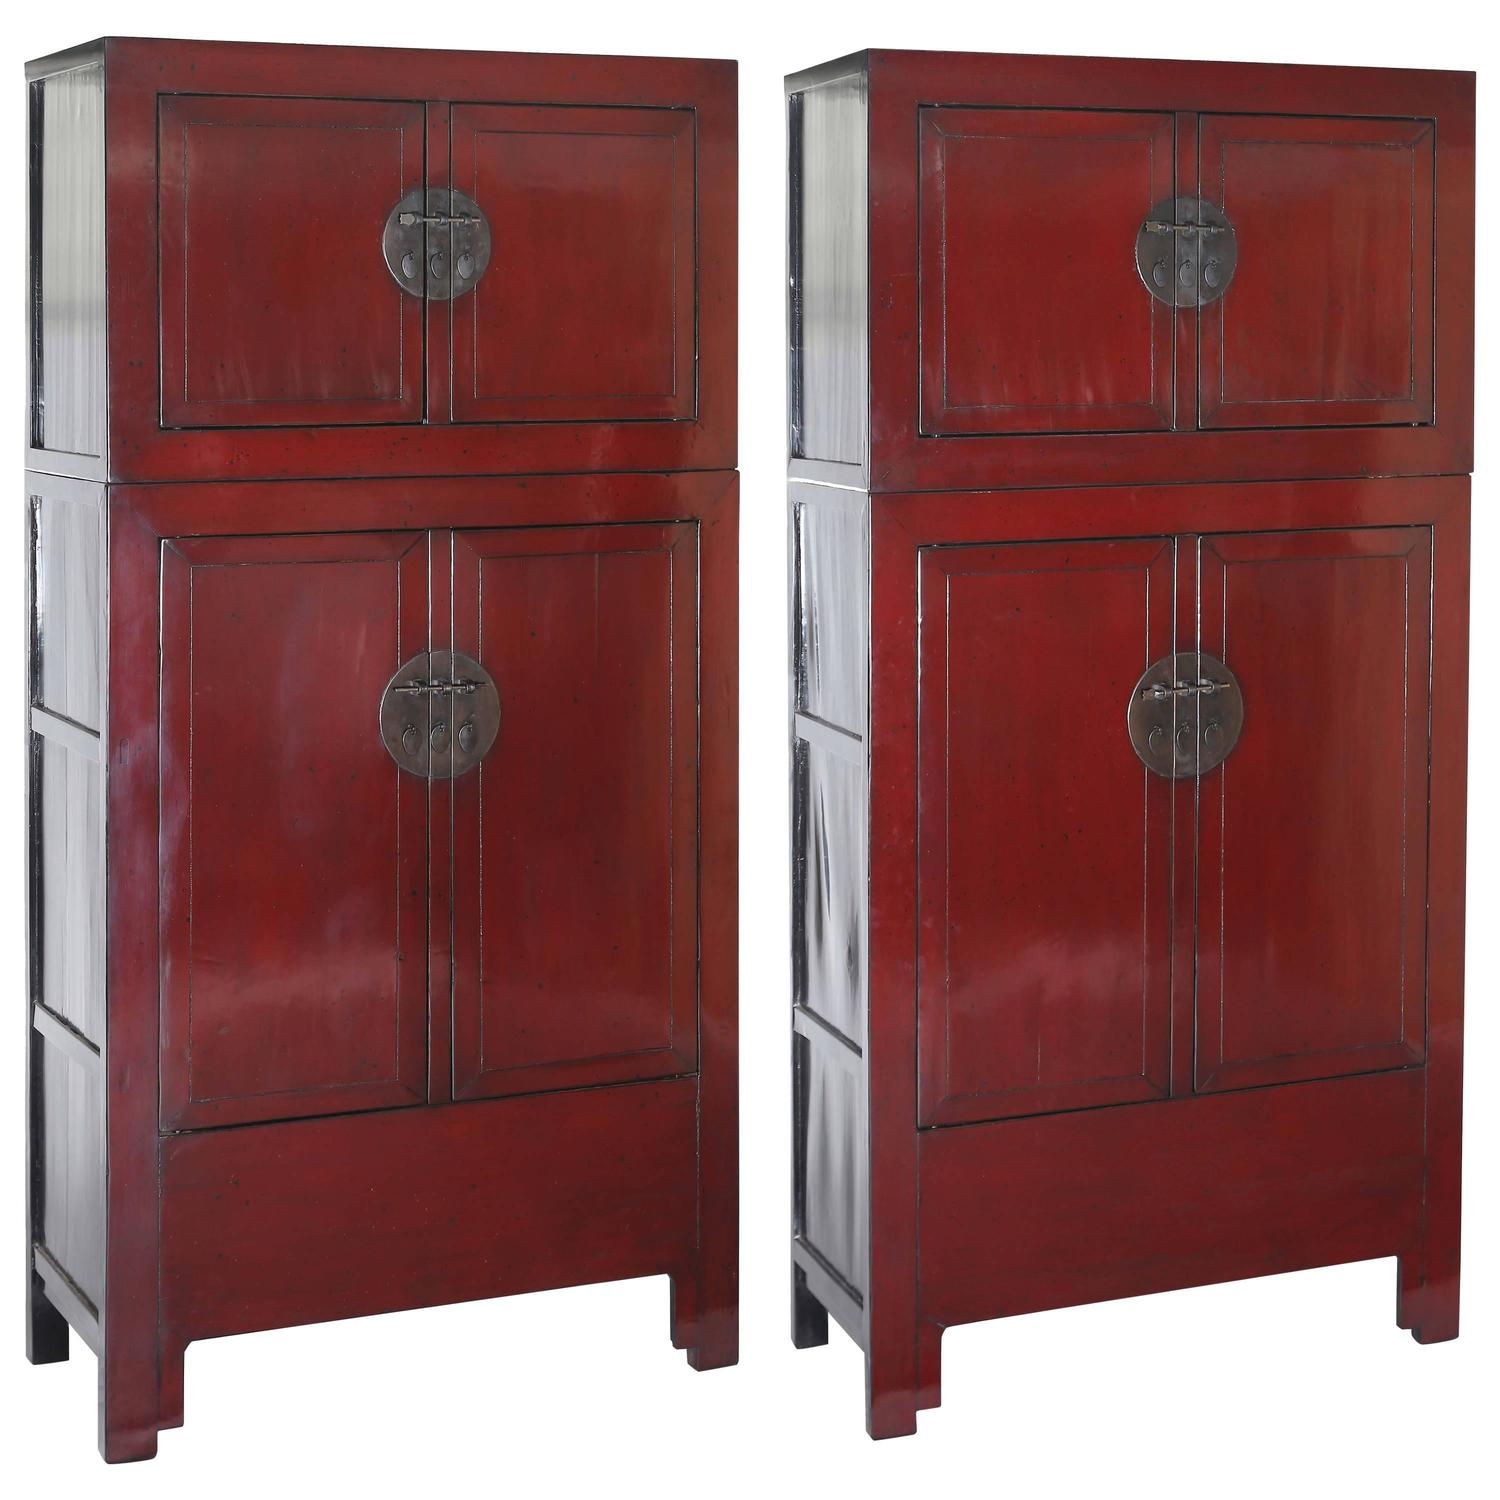 Antique Pair Of Red Lacquer Compound Storage Cabinets, Stacked, Chinoiserie  For Sale At 1stdibs